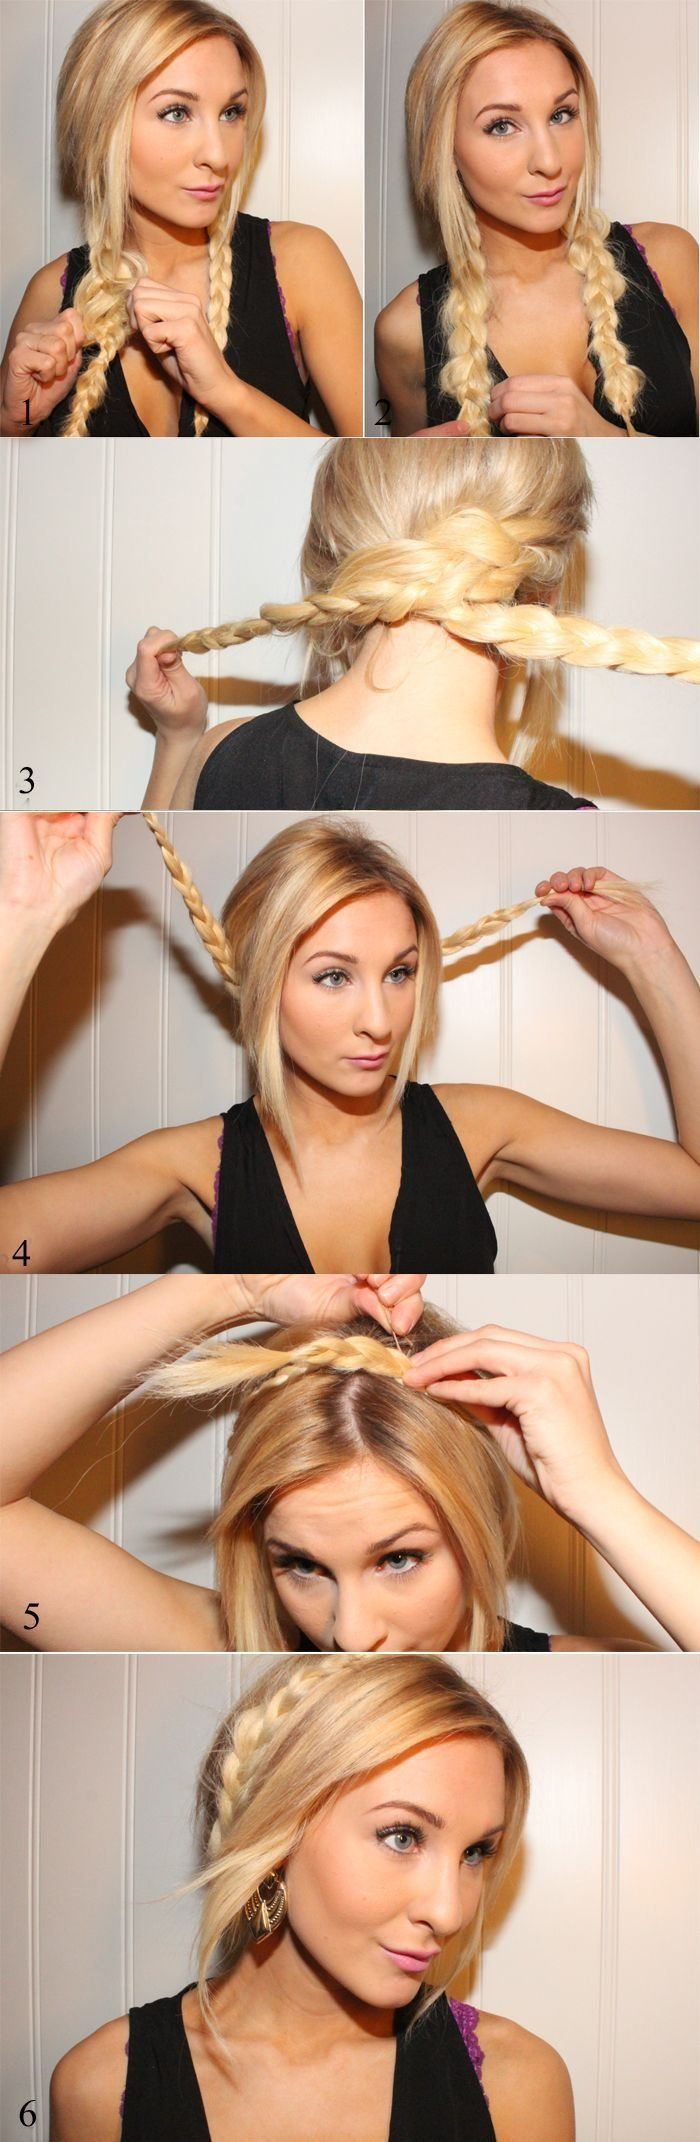 Here are some quick hairstyles for long hair that you can recreate for days like these. Related PostsSectioned Ponytail Hairstyle New TrendHairstyle Tutorial for Long Hair for All OccasionsQuick hairstyles for hair downtutorials fast and easy hairstylesSexy Ideas for Long Straight HairstylesSide Braid Hairstyles For Long HairEdit Related Posts Related